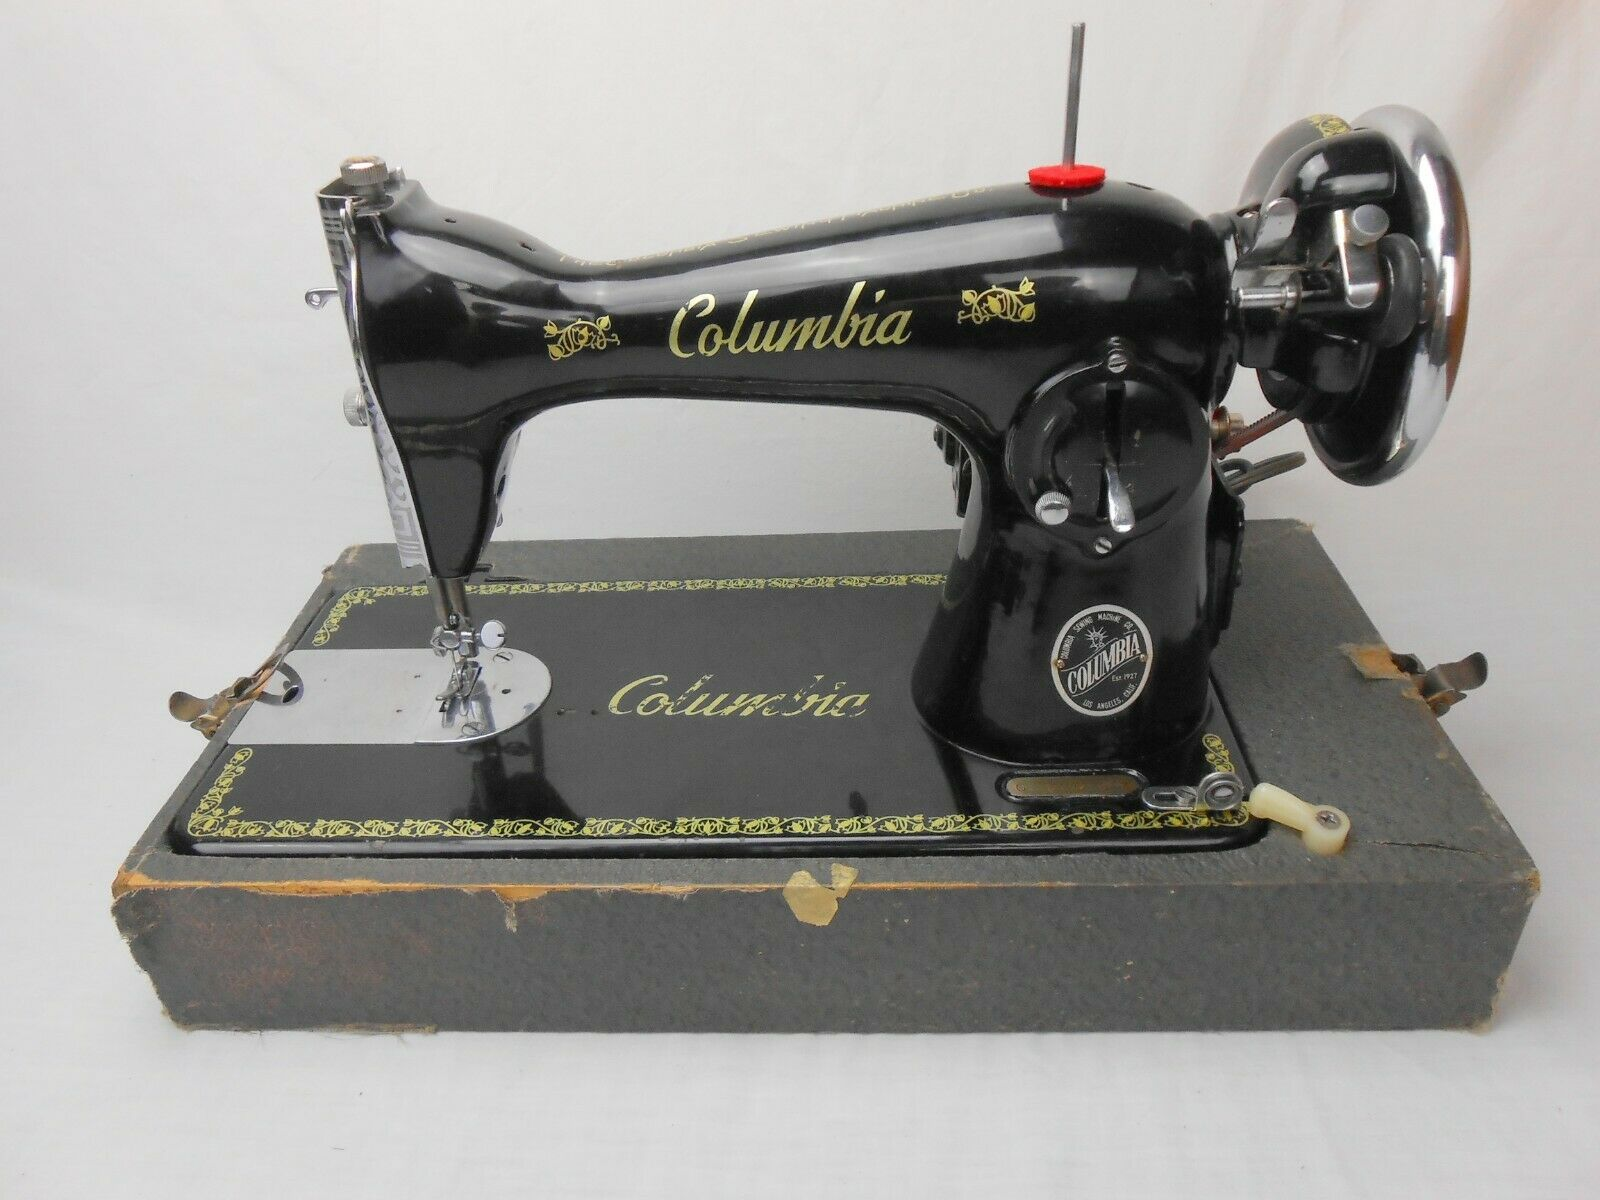 Universal DeLuxe Sewing Machine Gorgeous Artwork - Straight Stich - Sews Well - $174.99